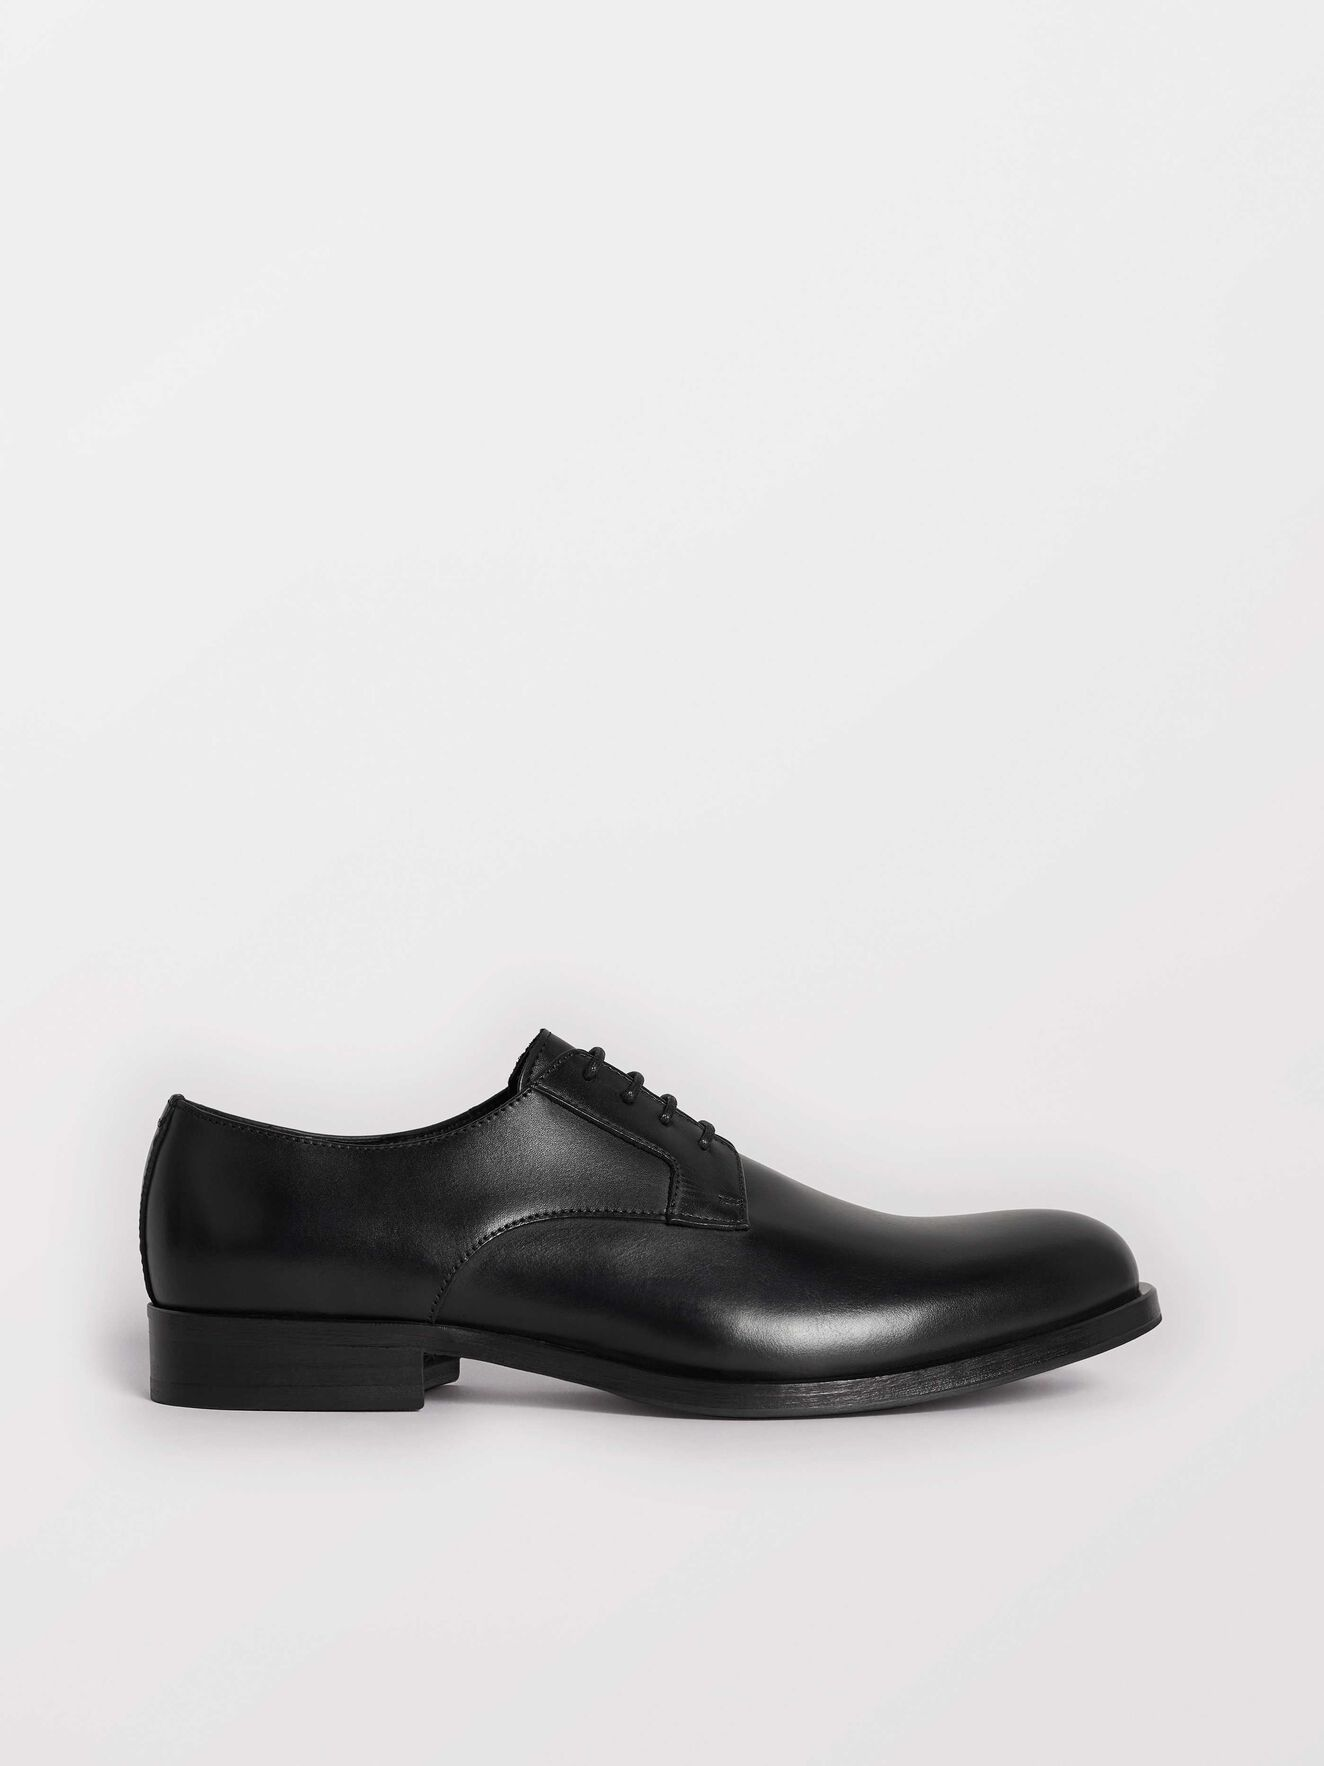 Sennit Shoe in Black from Tiger of Sweden